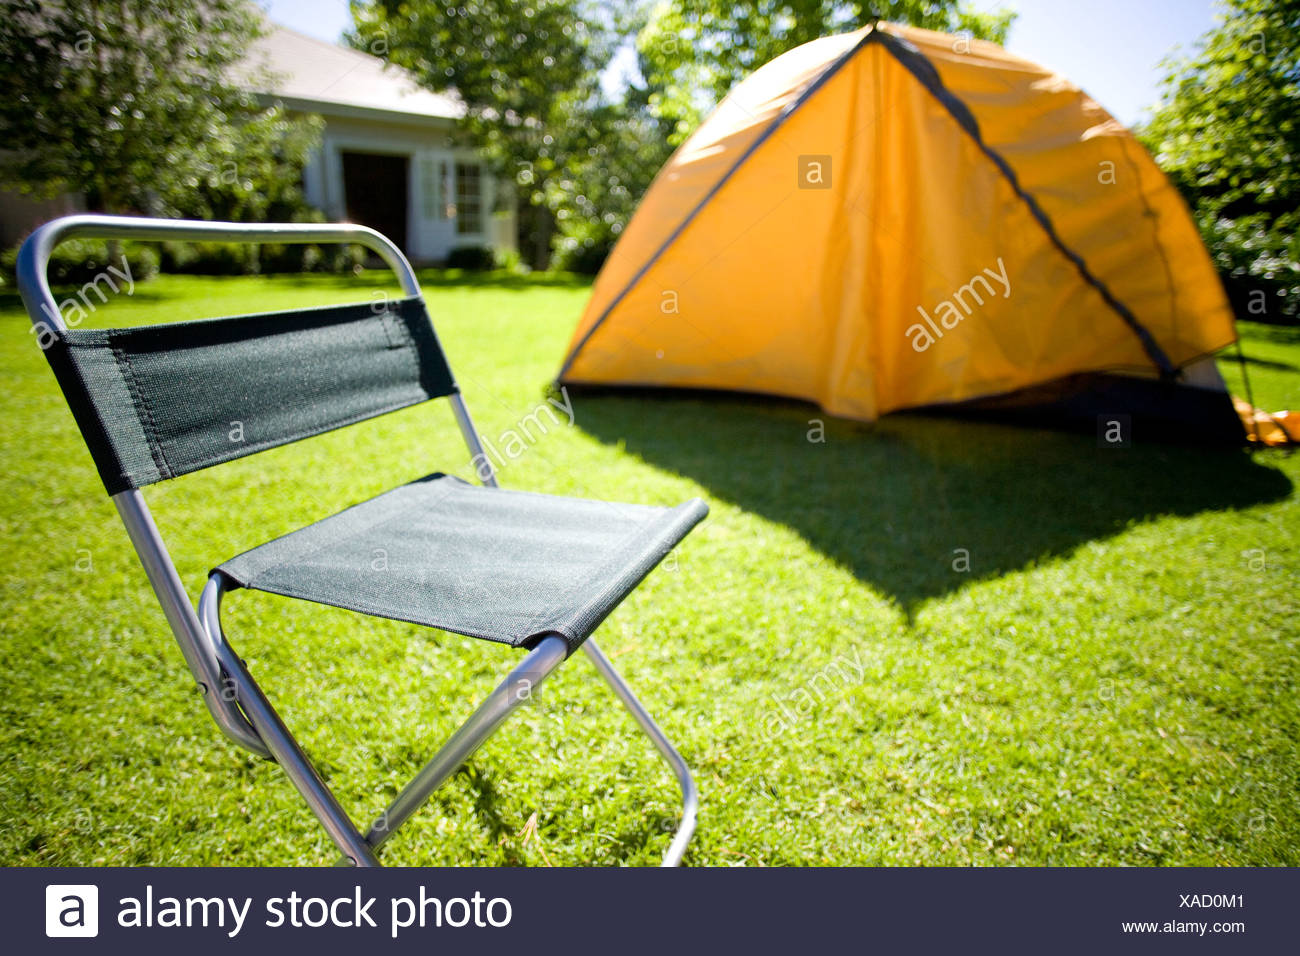 tent camping chair backyard stock photos tent camping chair